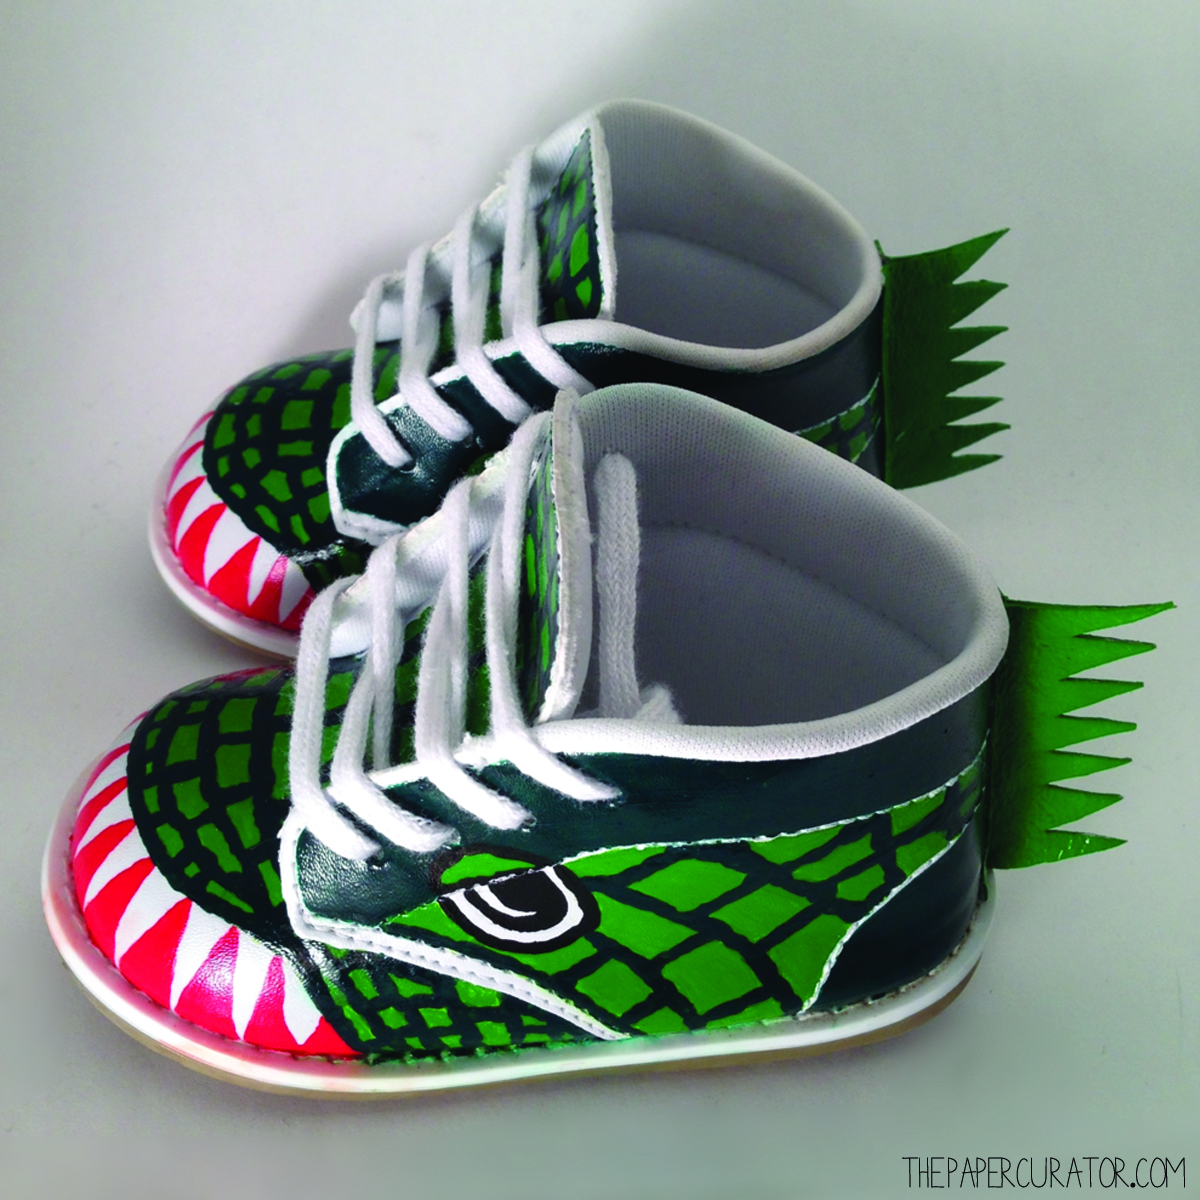 THE FINISHED DIY DINOSAUR SHOES, READY TO WEAR!